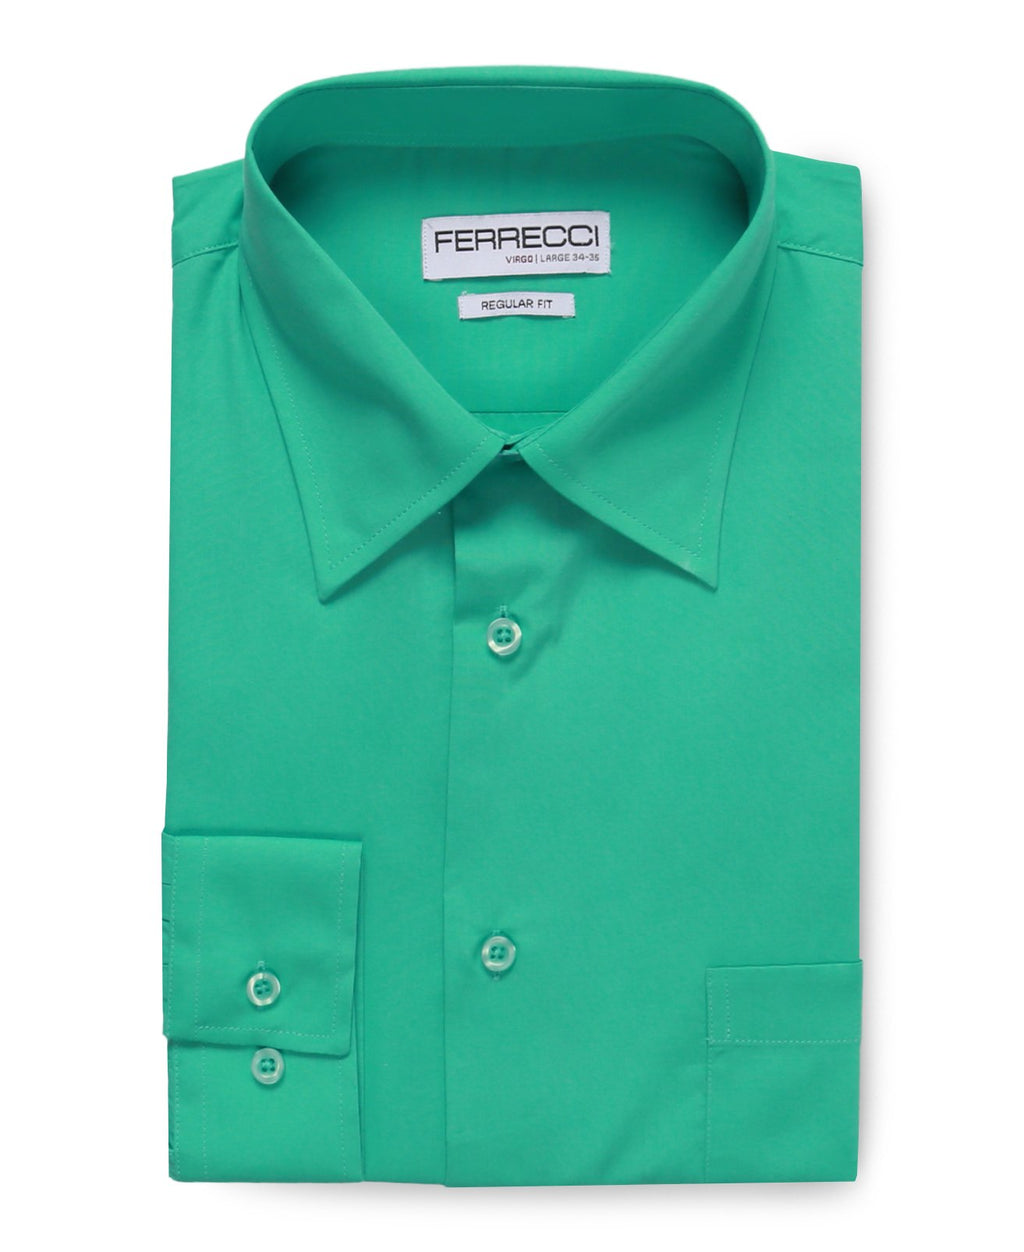 Virgo Turquoise Green Regular Fit Dress Shirt - Giorgio's Menswear